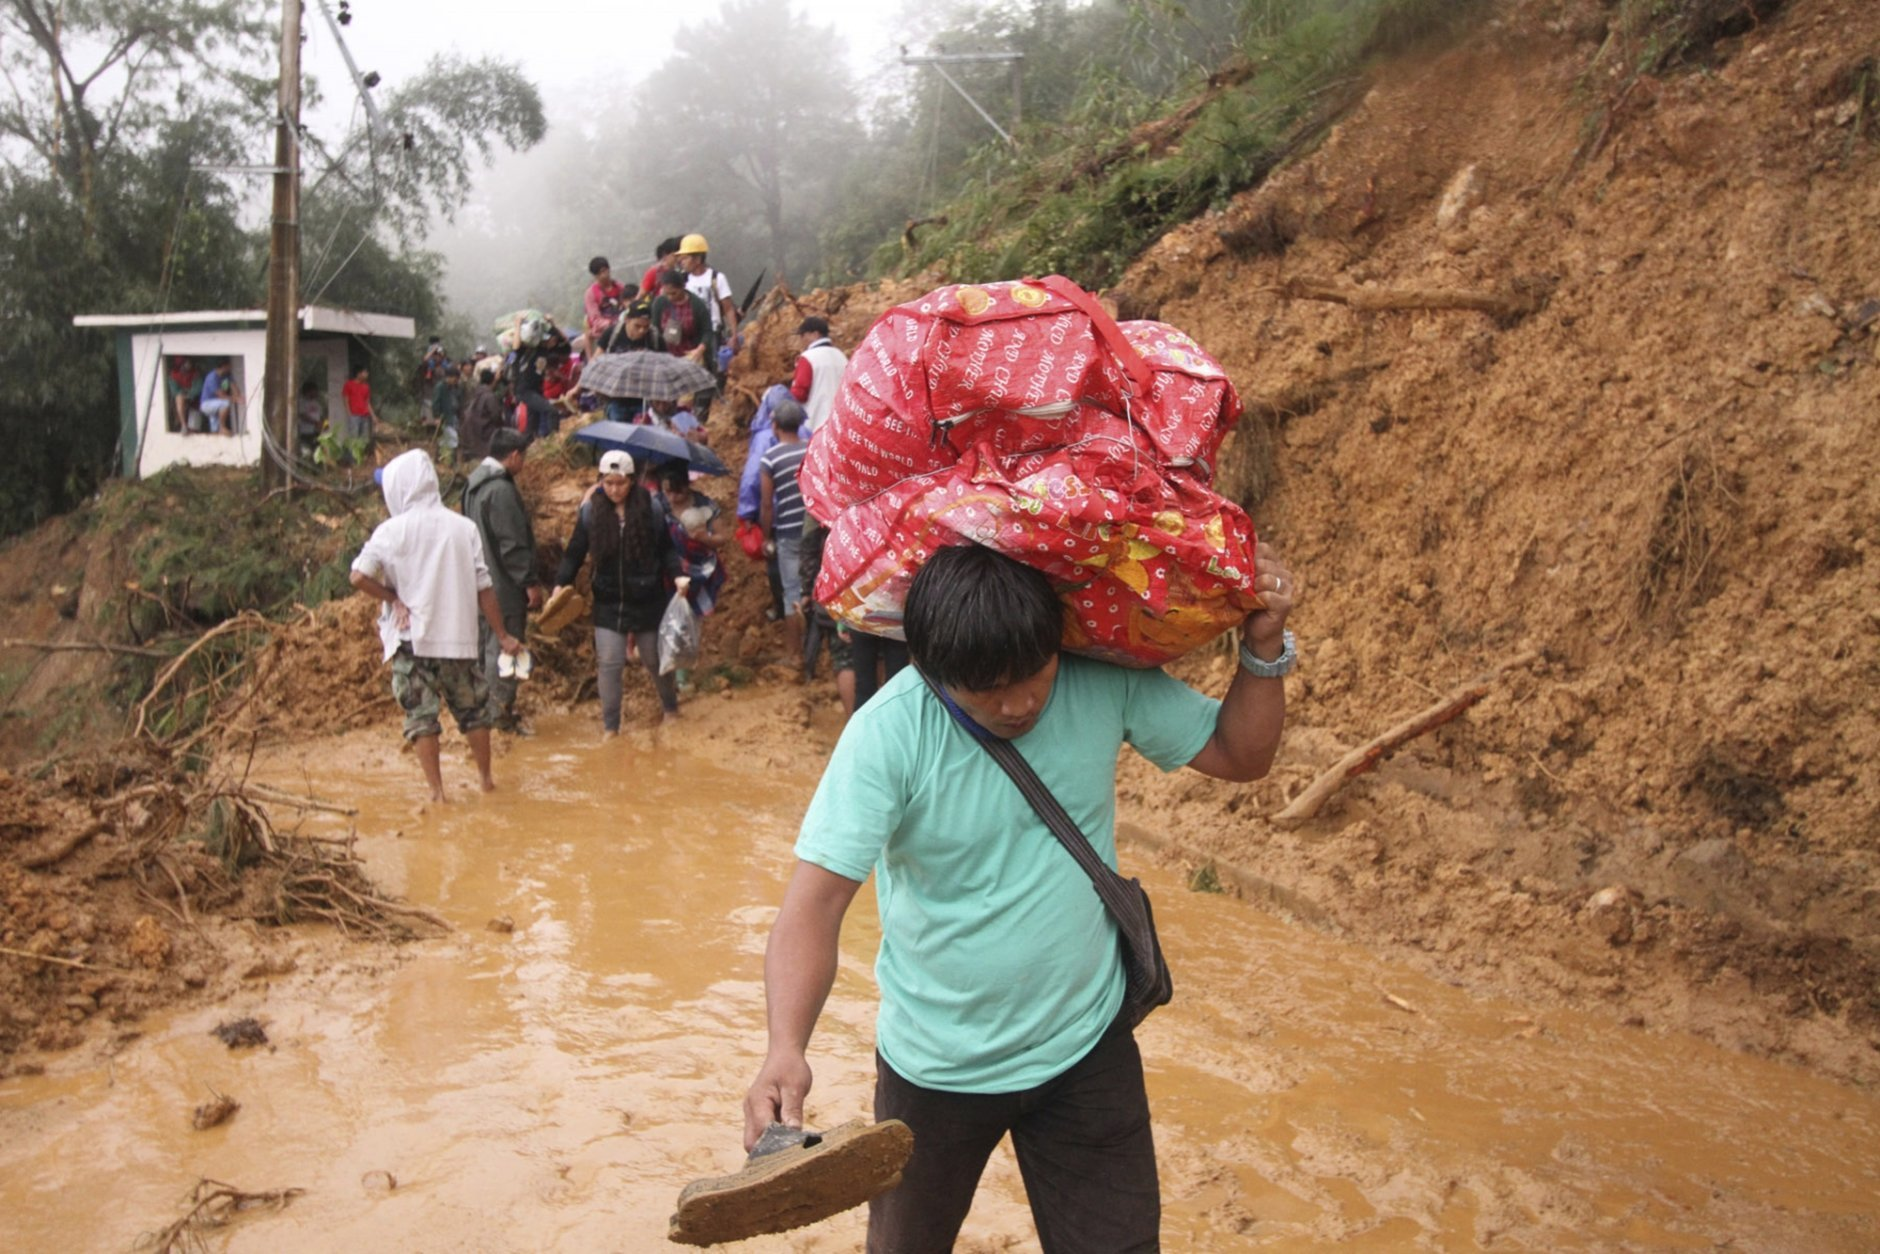 Families and relatives of miners in Itogon township, Benguet province in the northern Philippines, carry their belongings as they evacuate following landslides which were triggered by Typhoon Mangkhut burying an unknown number of miners and isolating the township Sunday, Sept. 16, 2018. Typhoon Mangkhut barreled into southern China on Sunday after lashing the northern Philippines with strong winds and heavy rain that left more than dozens dead from landslides and drownings. (AP Photo/Jayjay Landingin)